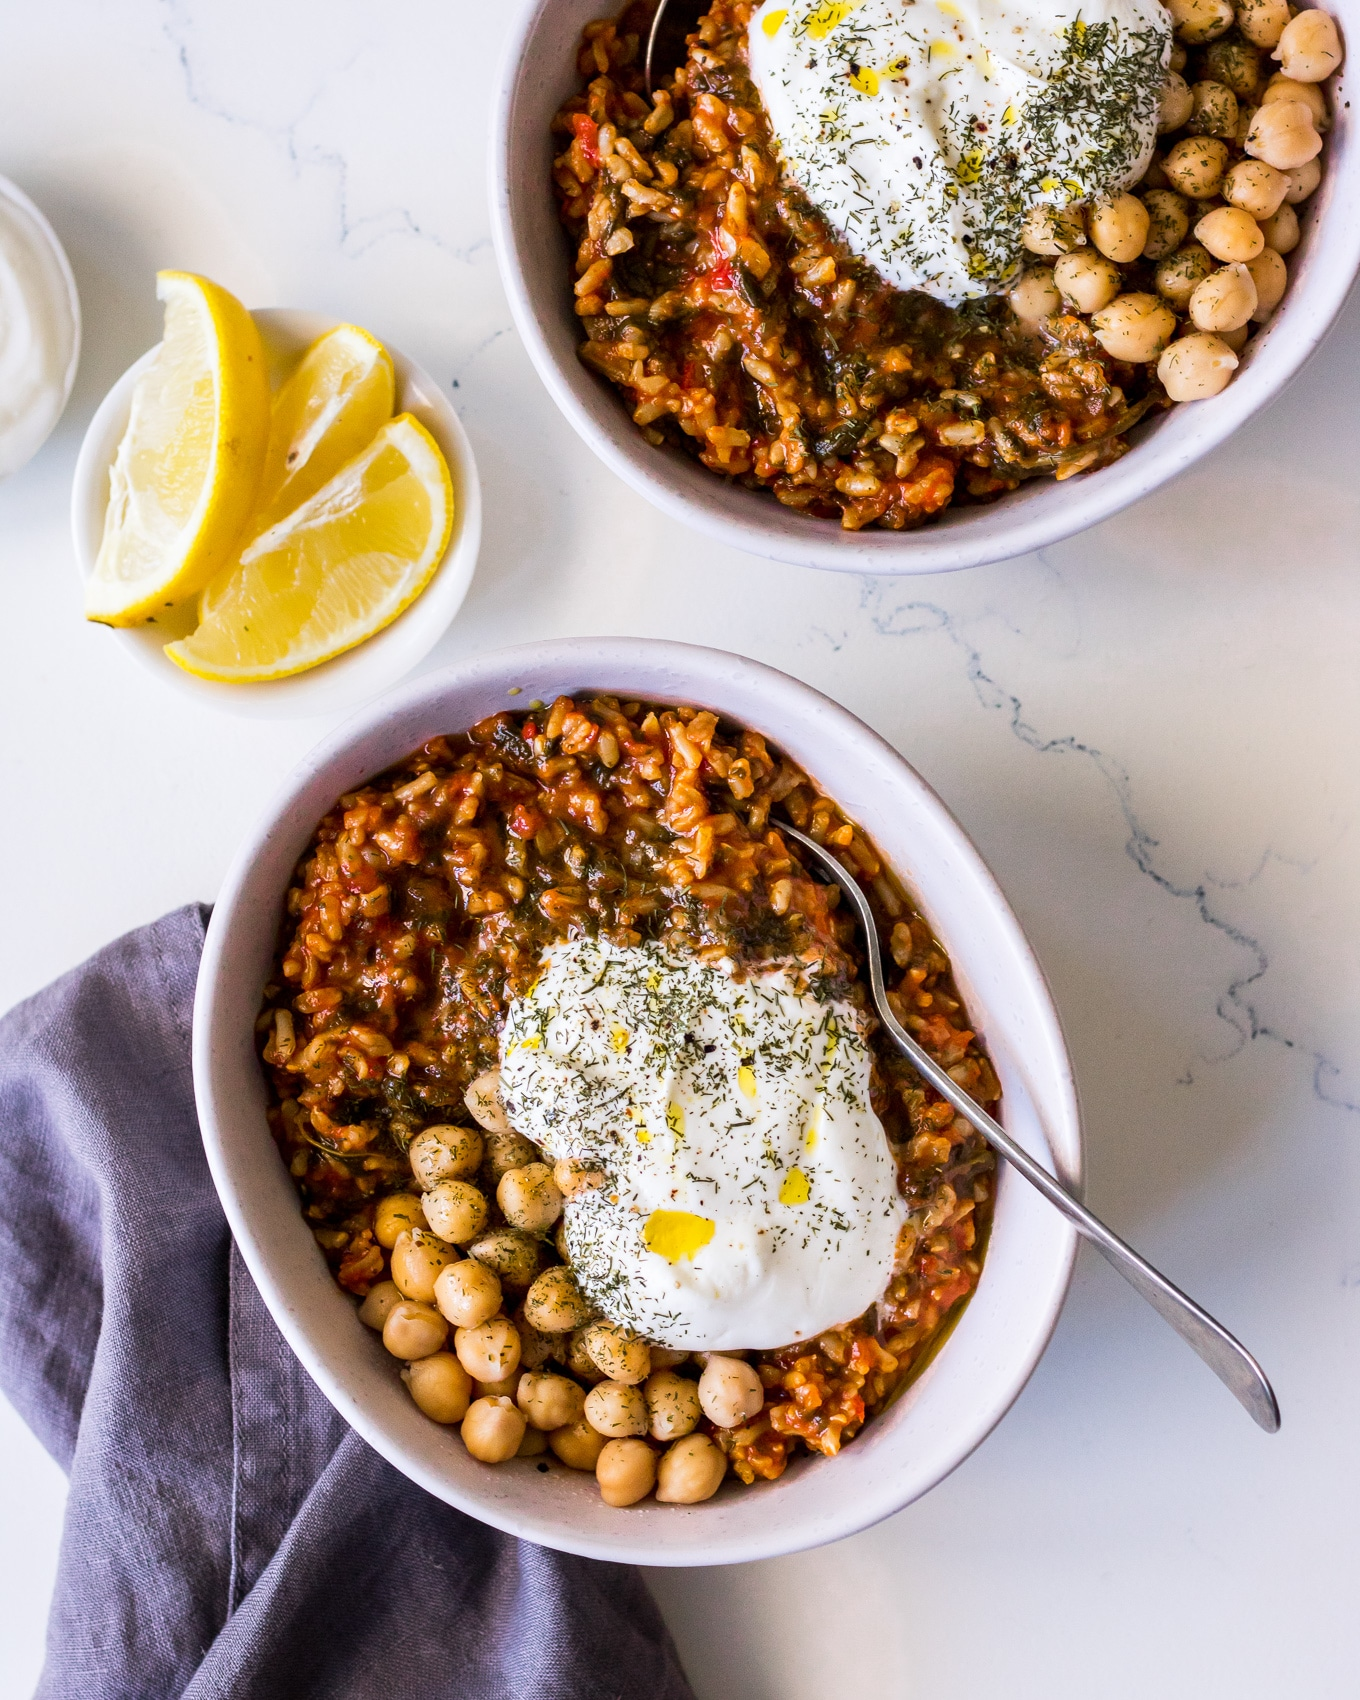 Spanakorizo (Greek spinach and rice) in a white bowl with chickpeas, yoghurt, lemon and herbs